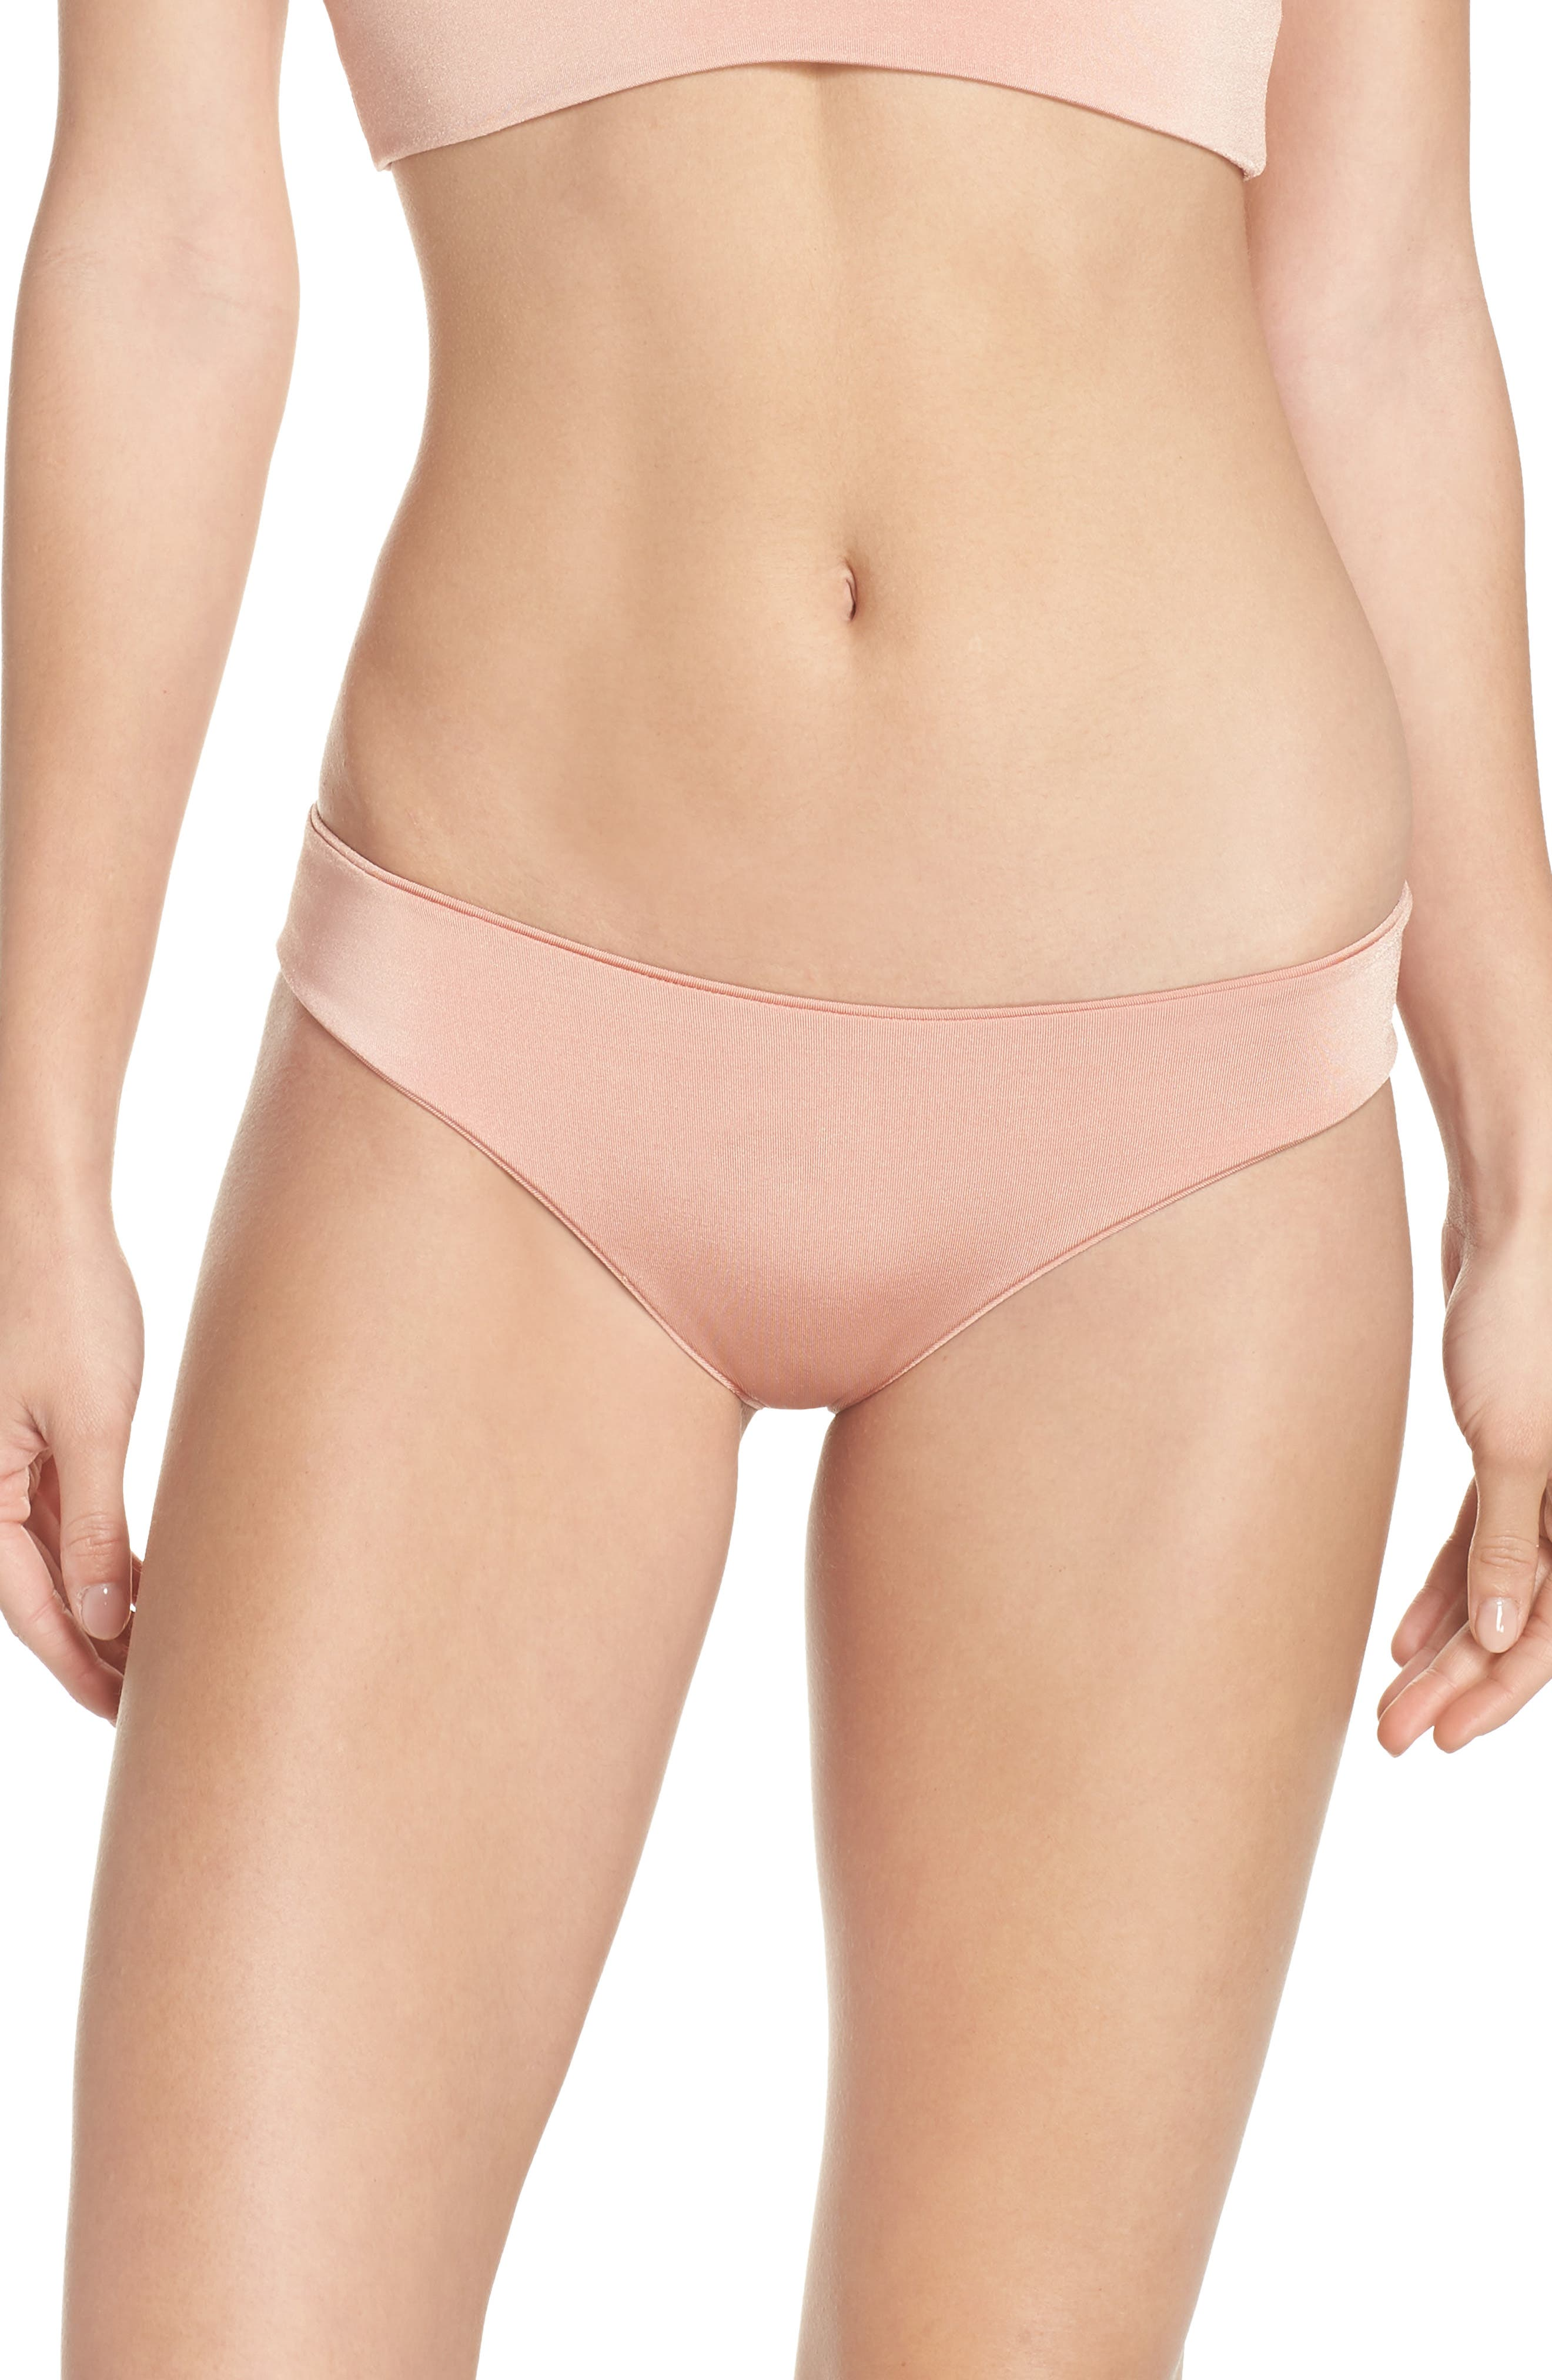 Charlie Bikini Bottoms,                         Main,                         color, BLUSH & BASHFUL